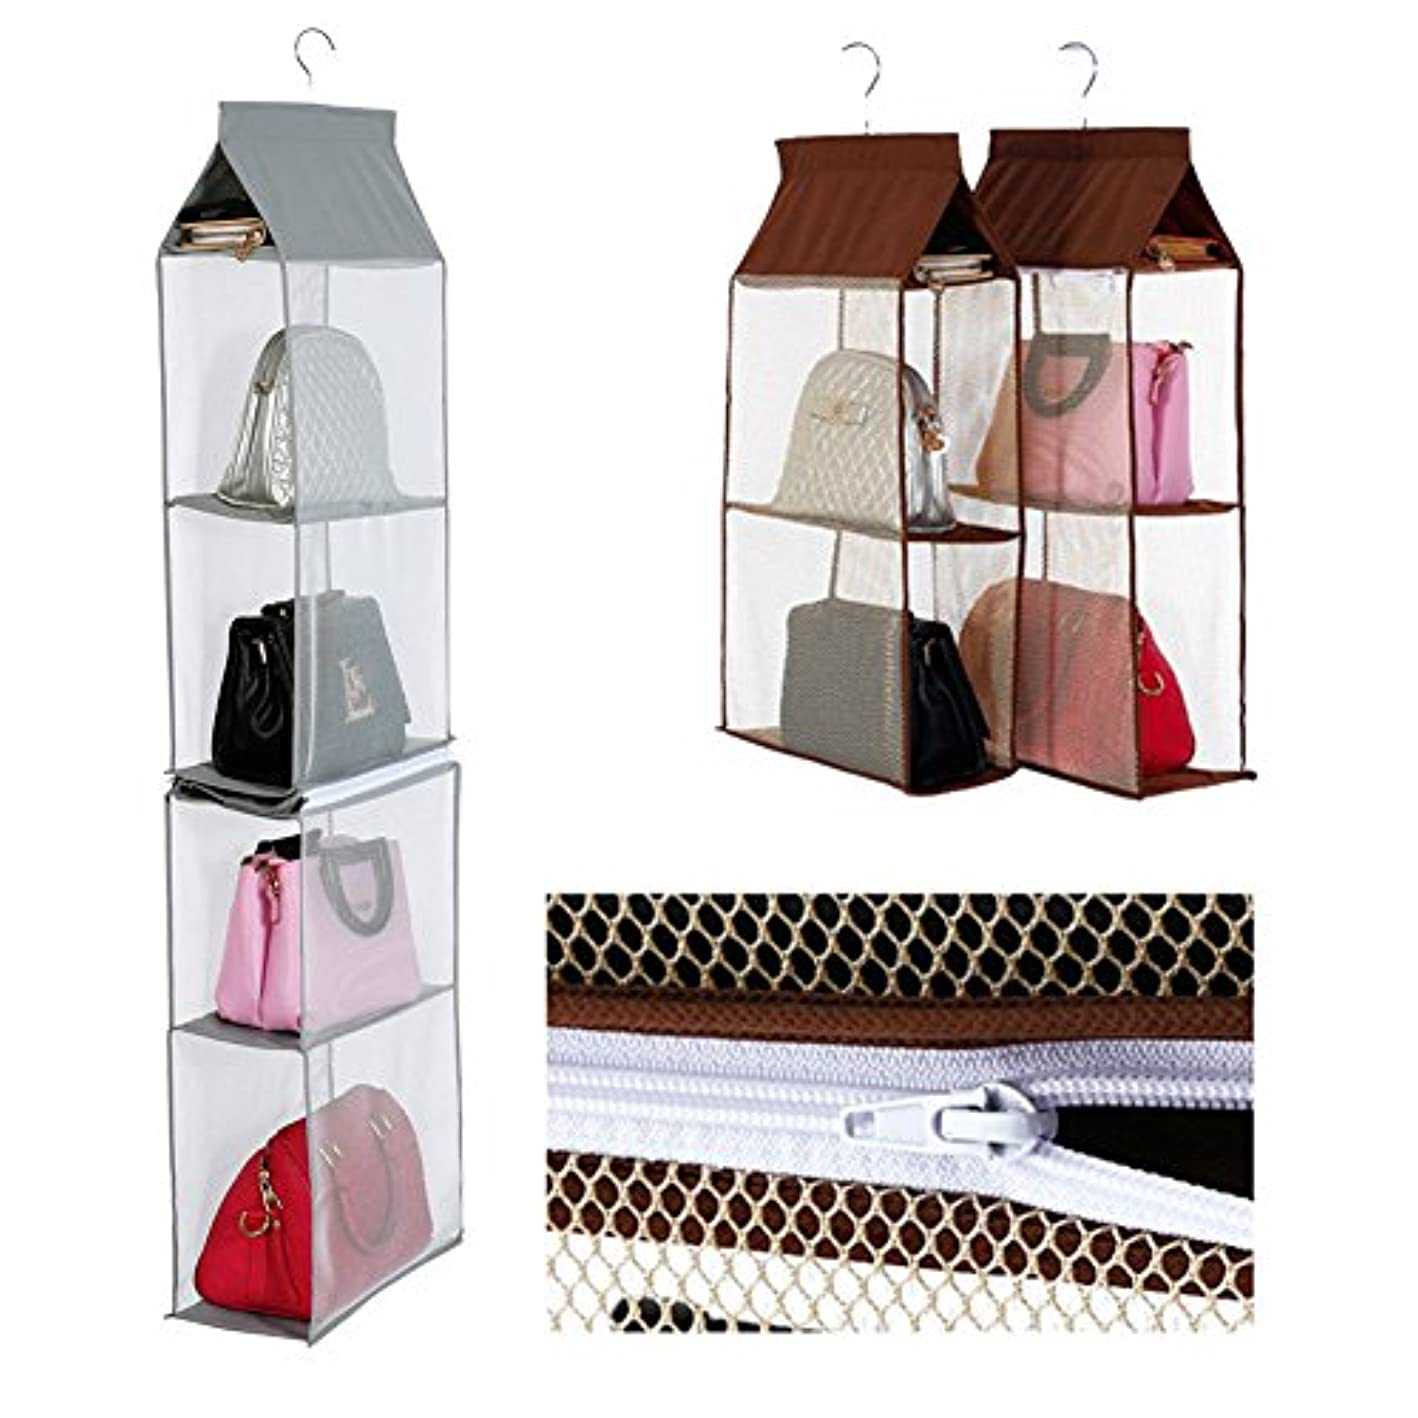 Hanging Handbag Organizer 6 Compartment Purse Clutch Bag Collection Storage Holder Wardrobe Closet Space Saving Organizers System Dust-Proof Foldable for Shoes Handbags etc. Home Bedroom Use